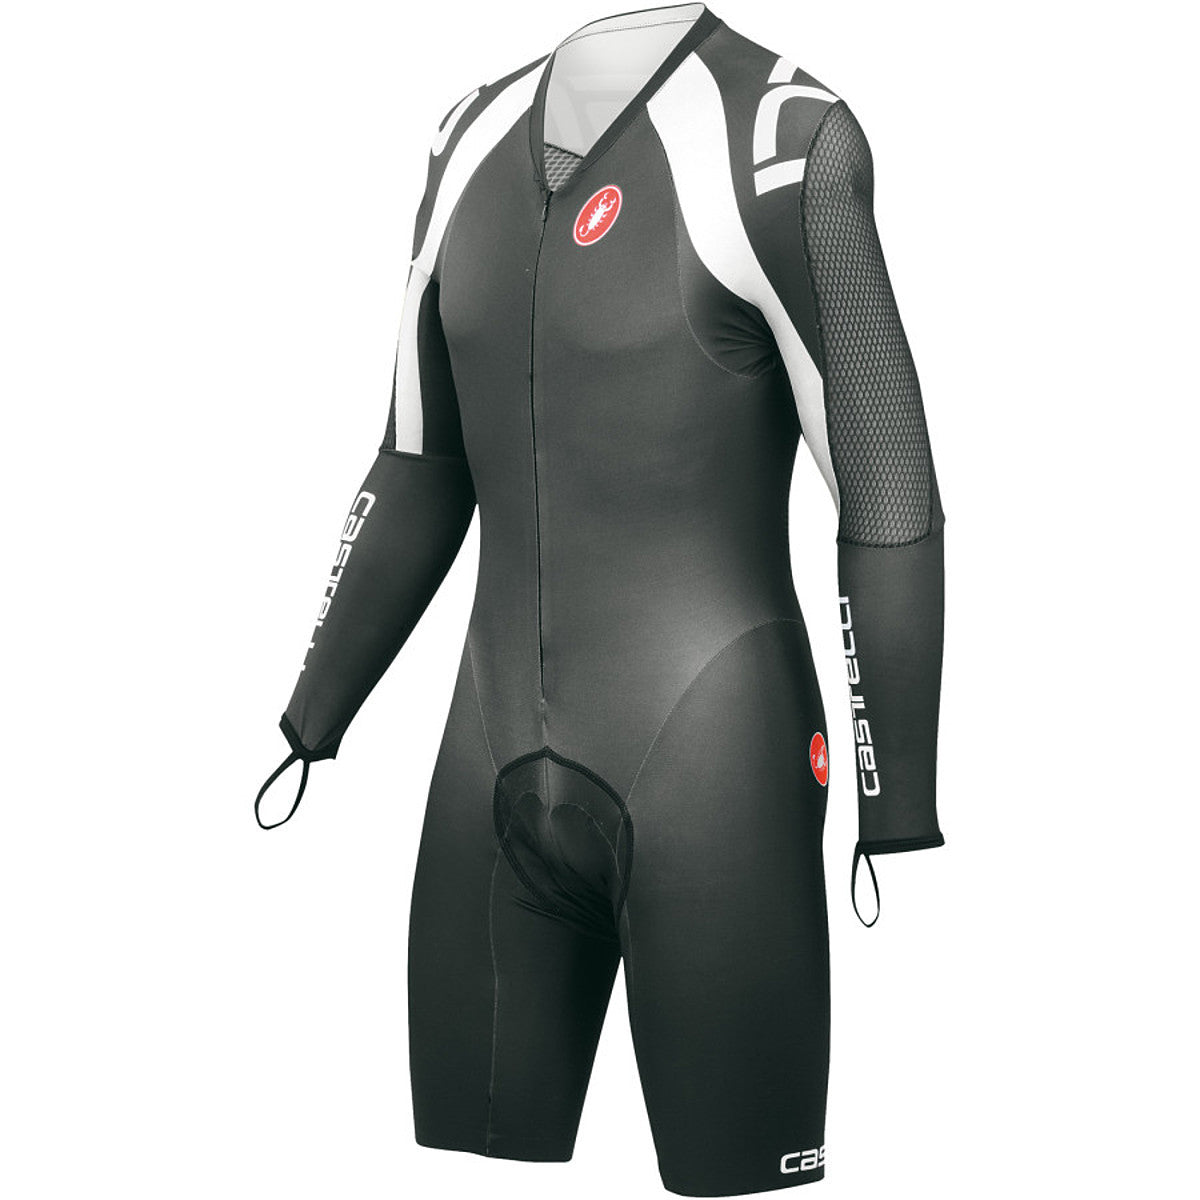 Castelli Body Paint 3.0 Speed Suit Long Sleeve - Racer Sportif